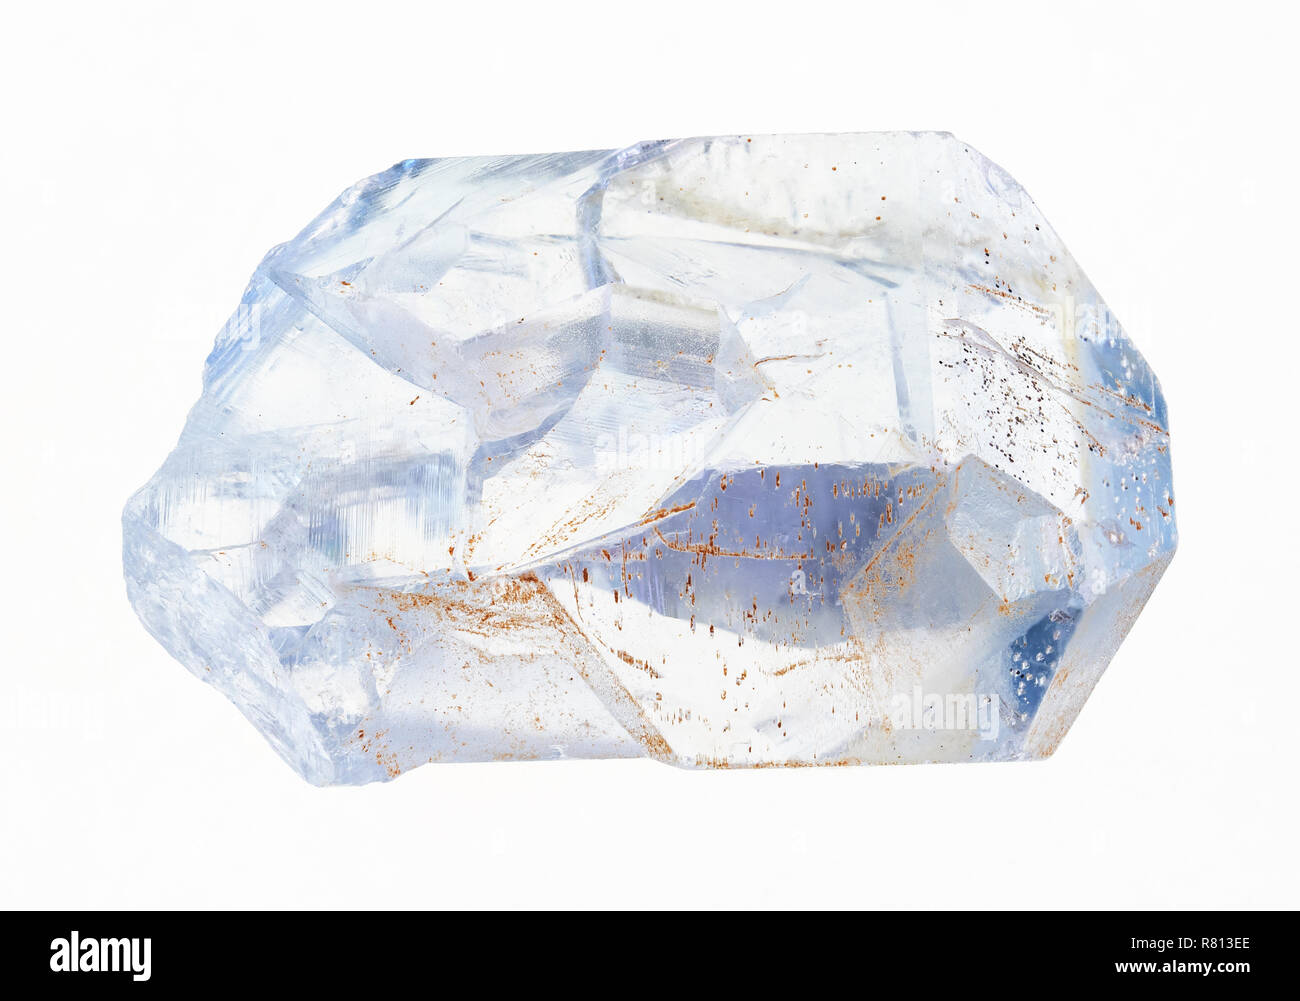 macro photography of natural mineral from geological collection - rough crystal of celestine (celestite) on white background - Stock Image